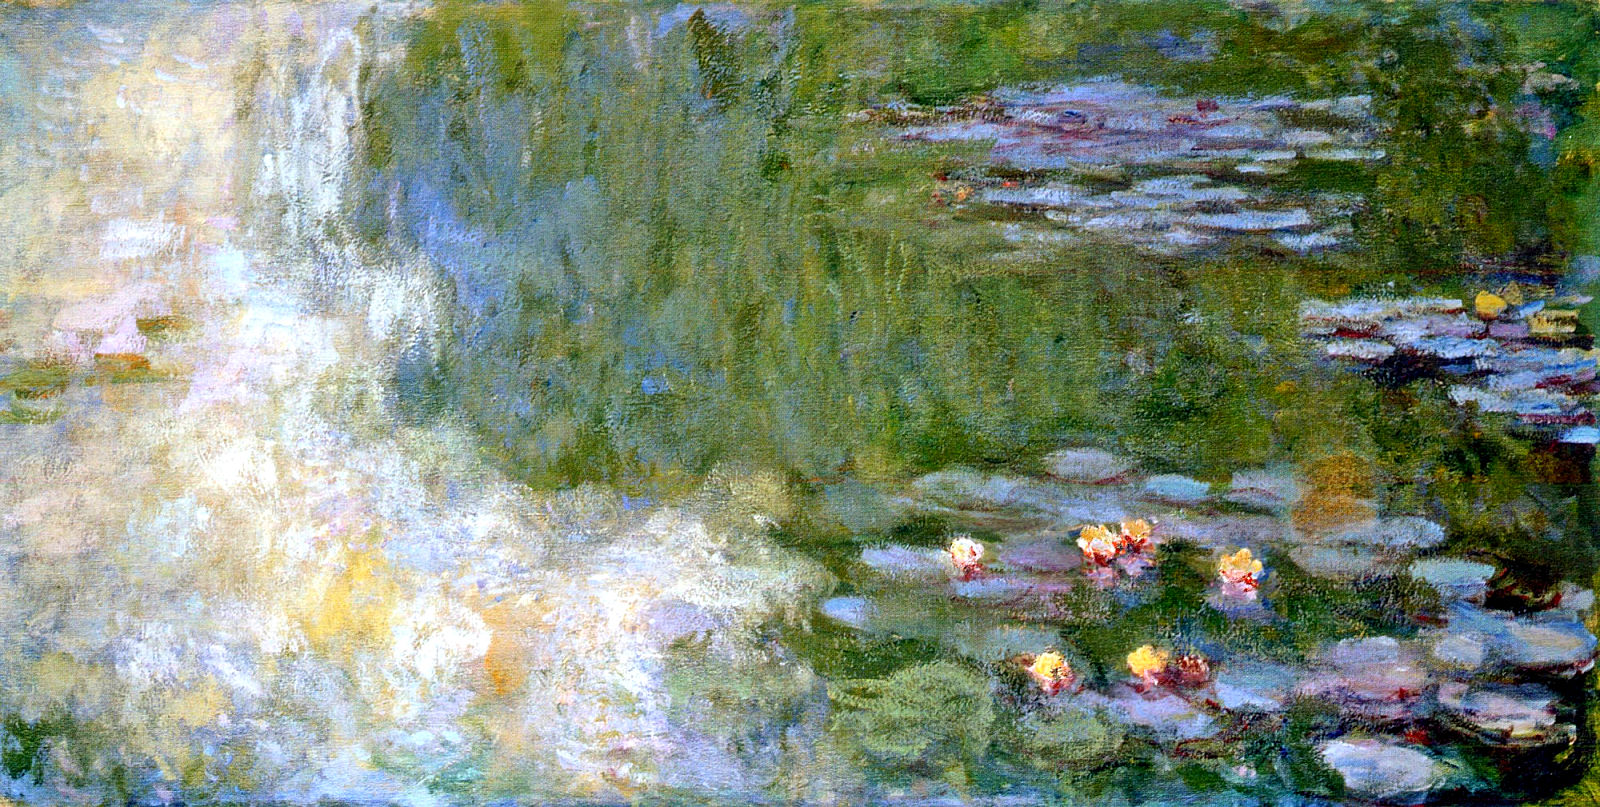 Water Lily Pond, 1917 - 1919 - Claude Monet - WikiArt.org